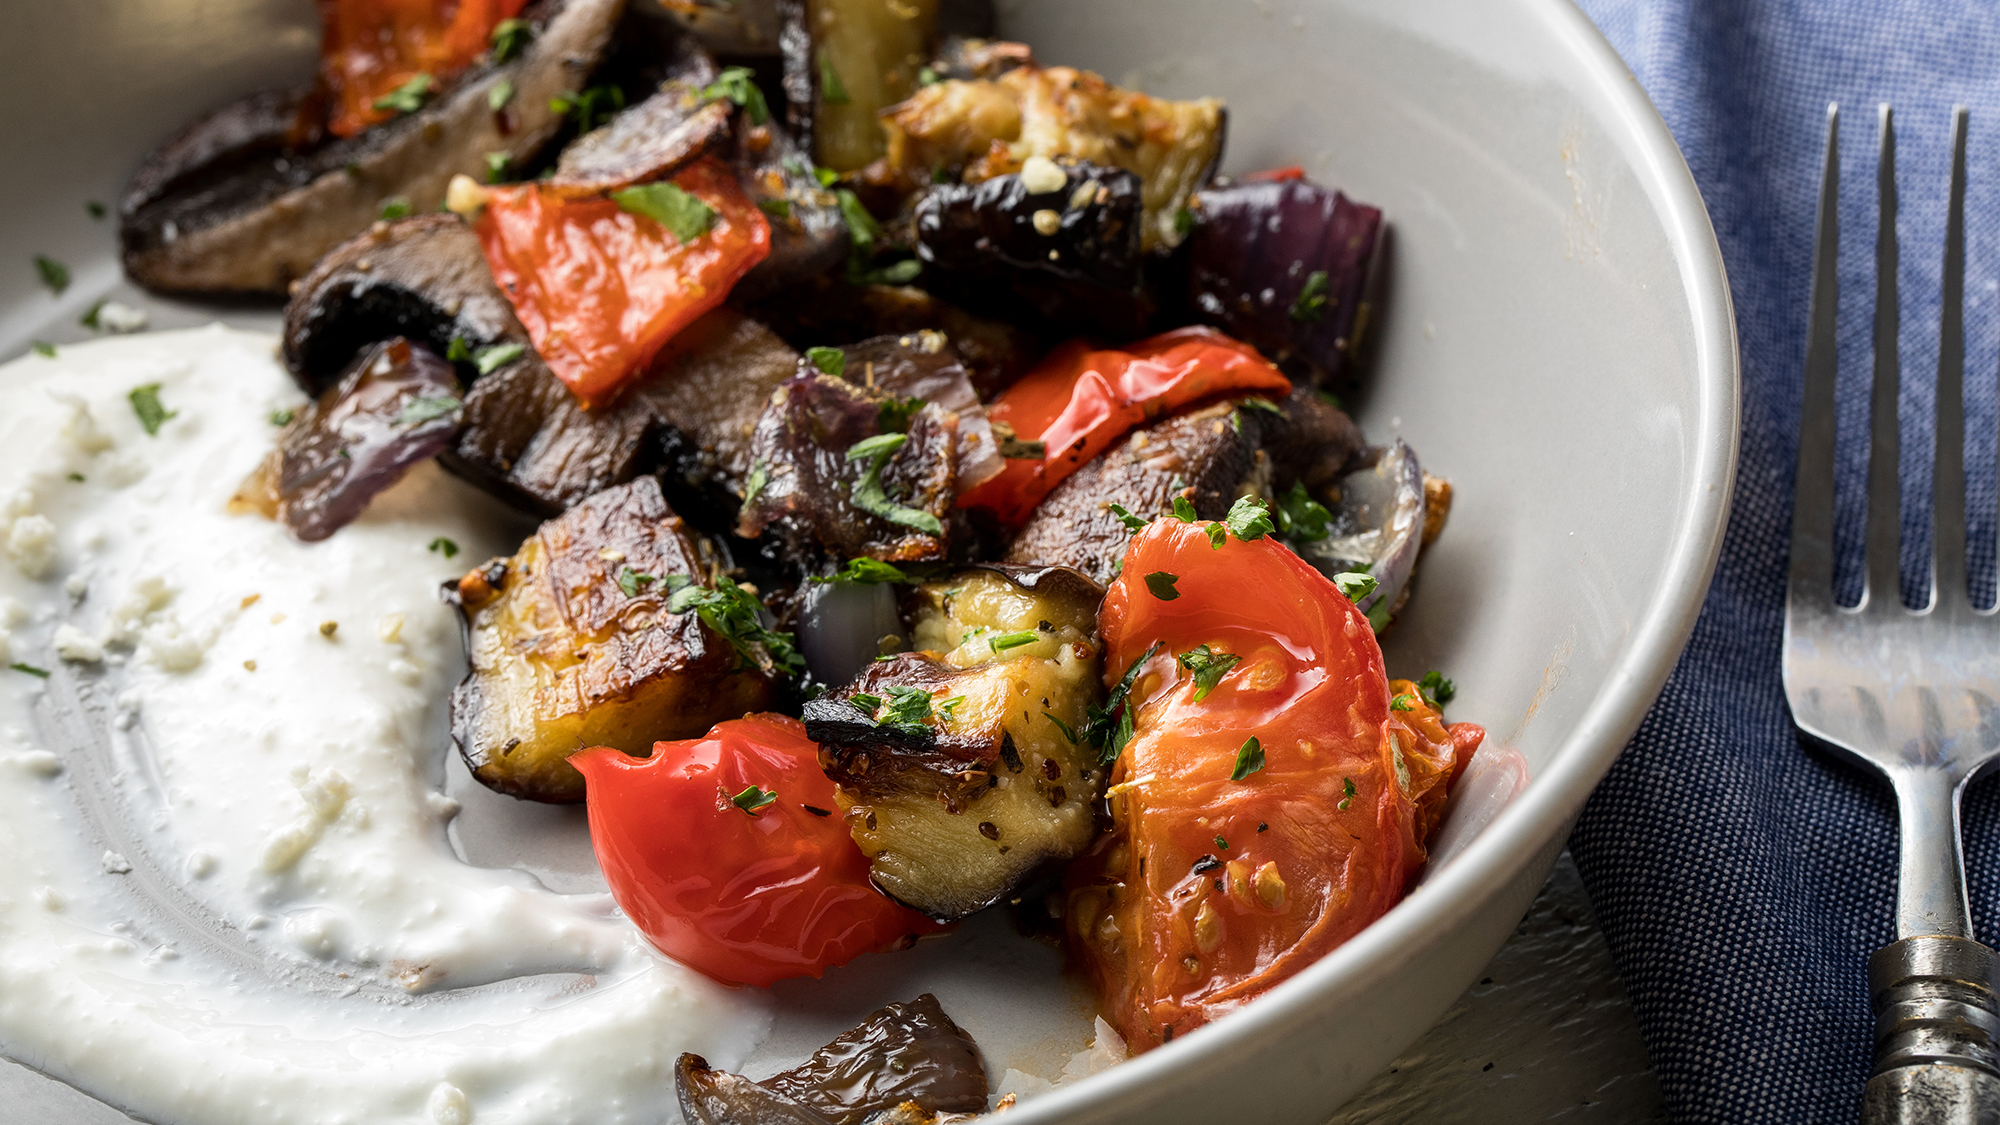 roasted_vegetables_with_creamy_whipped_feta2000x1125.jpg